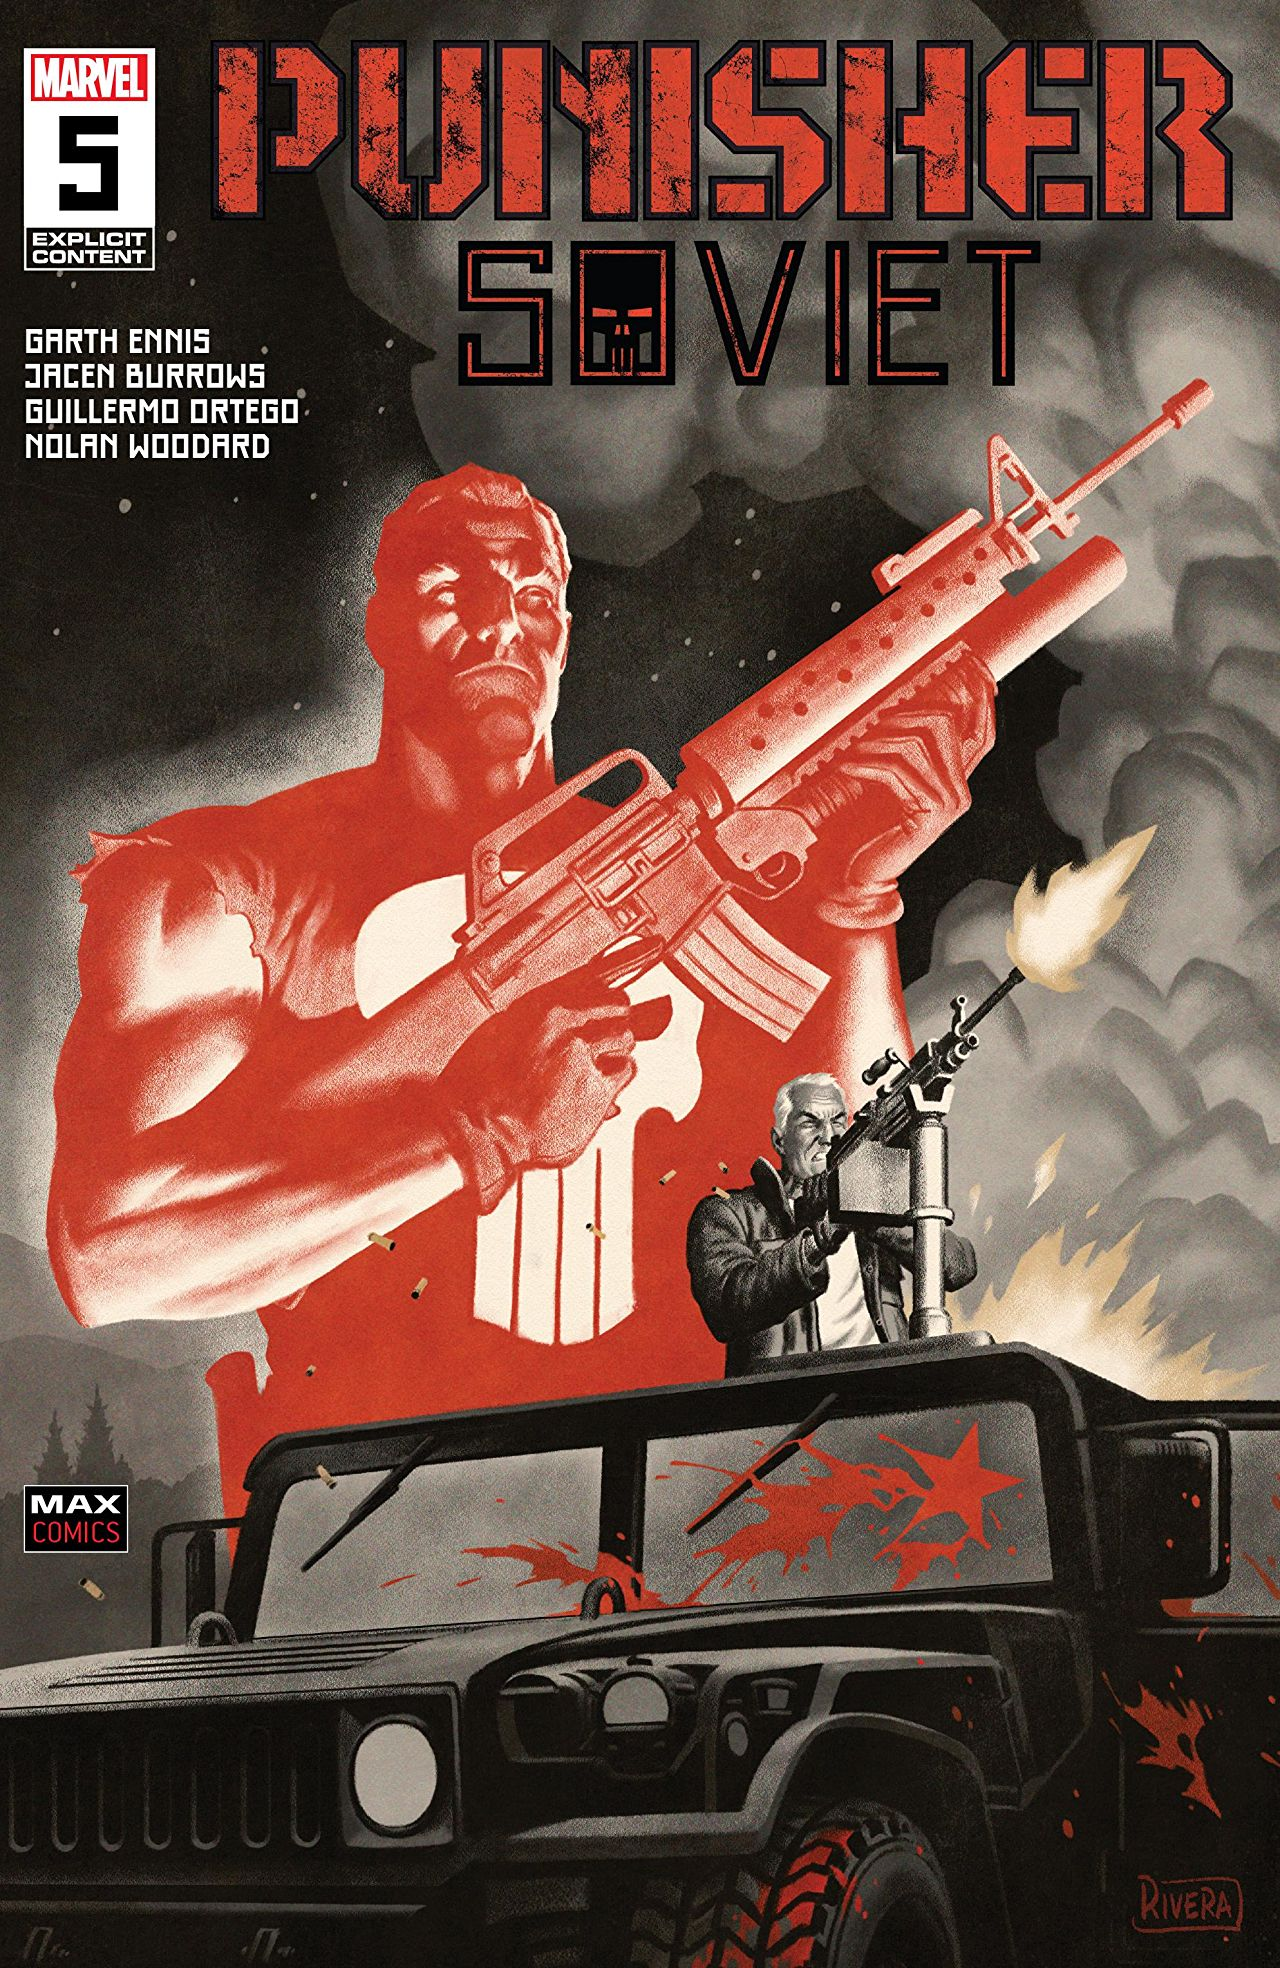 Punisher: Soviet (2019) #5